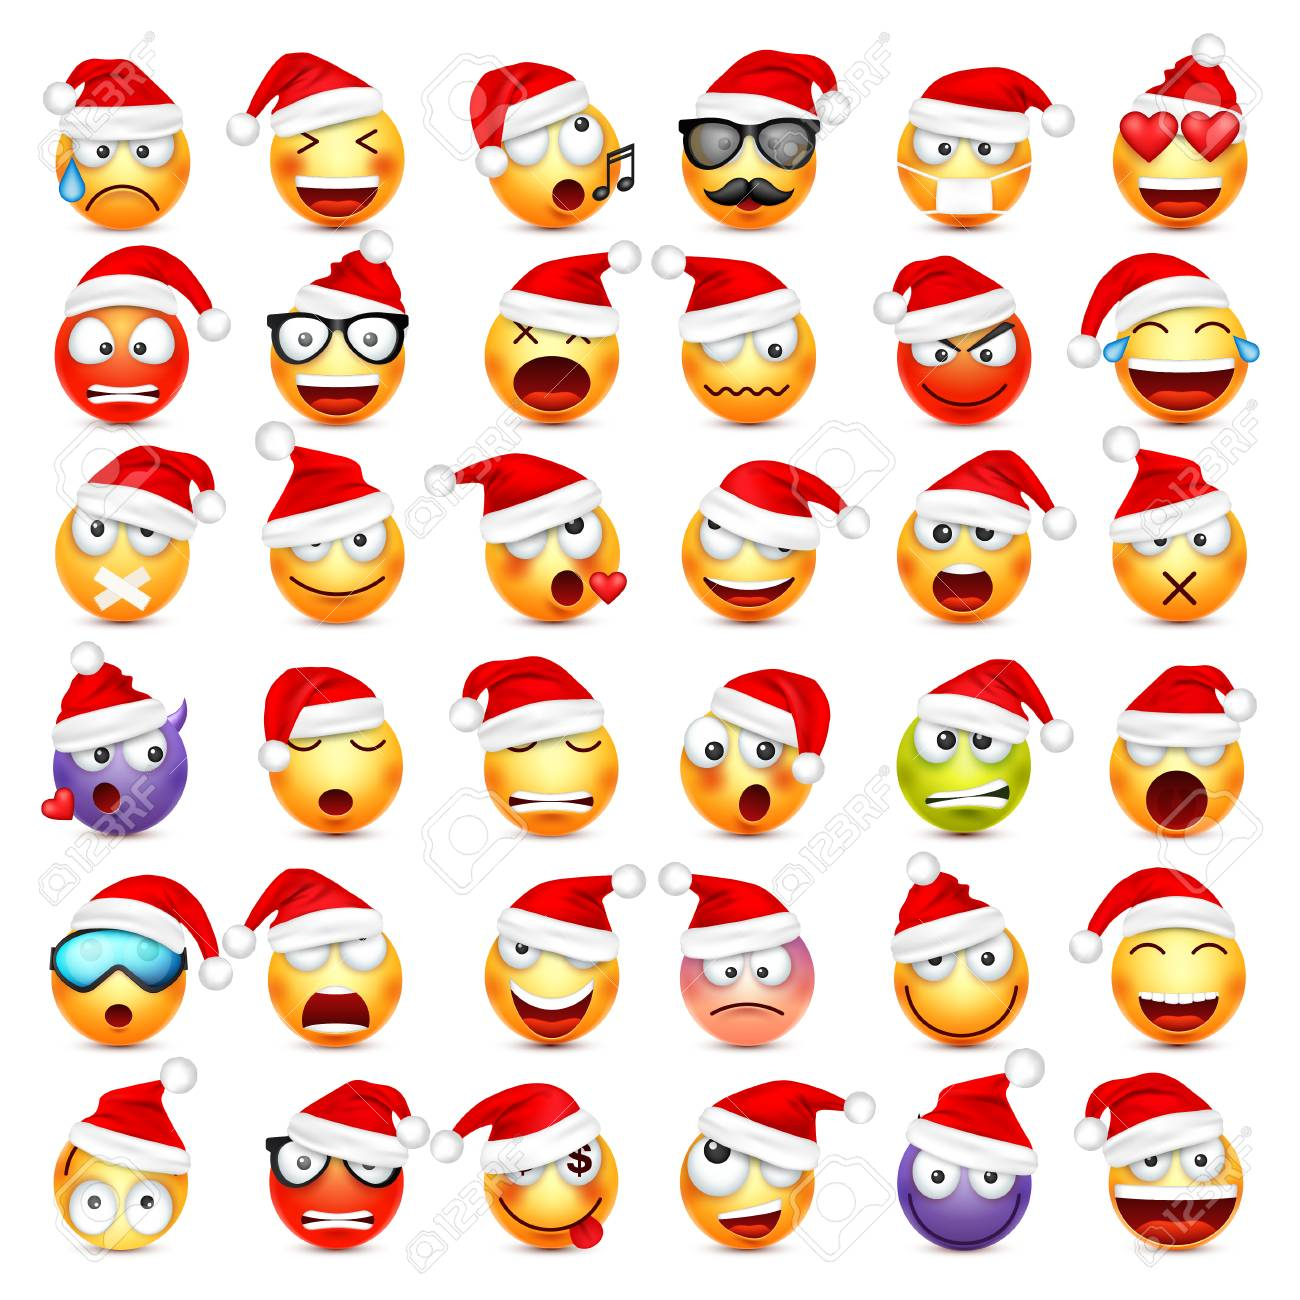 Smiley,emoticon set. Yellow face with emotions and Christmas hat. New Year, Santa. Winter emoji. Sad,happy,angry faces. Funny cartoon character. Mood. - 89064264